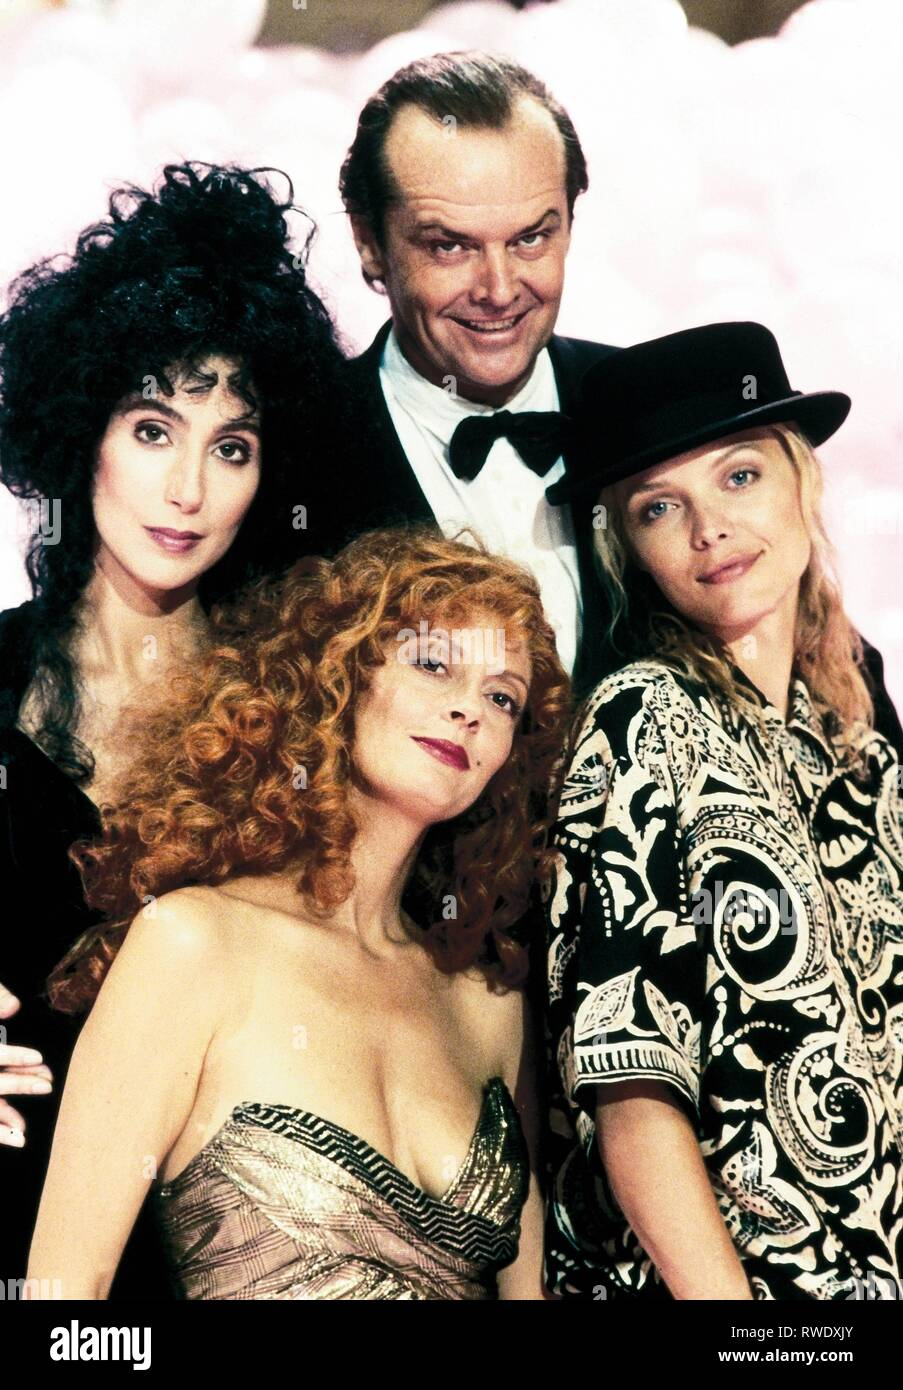 CHER,SARANDON,NICHOLSON,PFEIFFER, THE WITCHES OF EASTWICK, 1987 - Stock Image